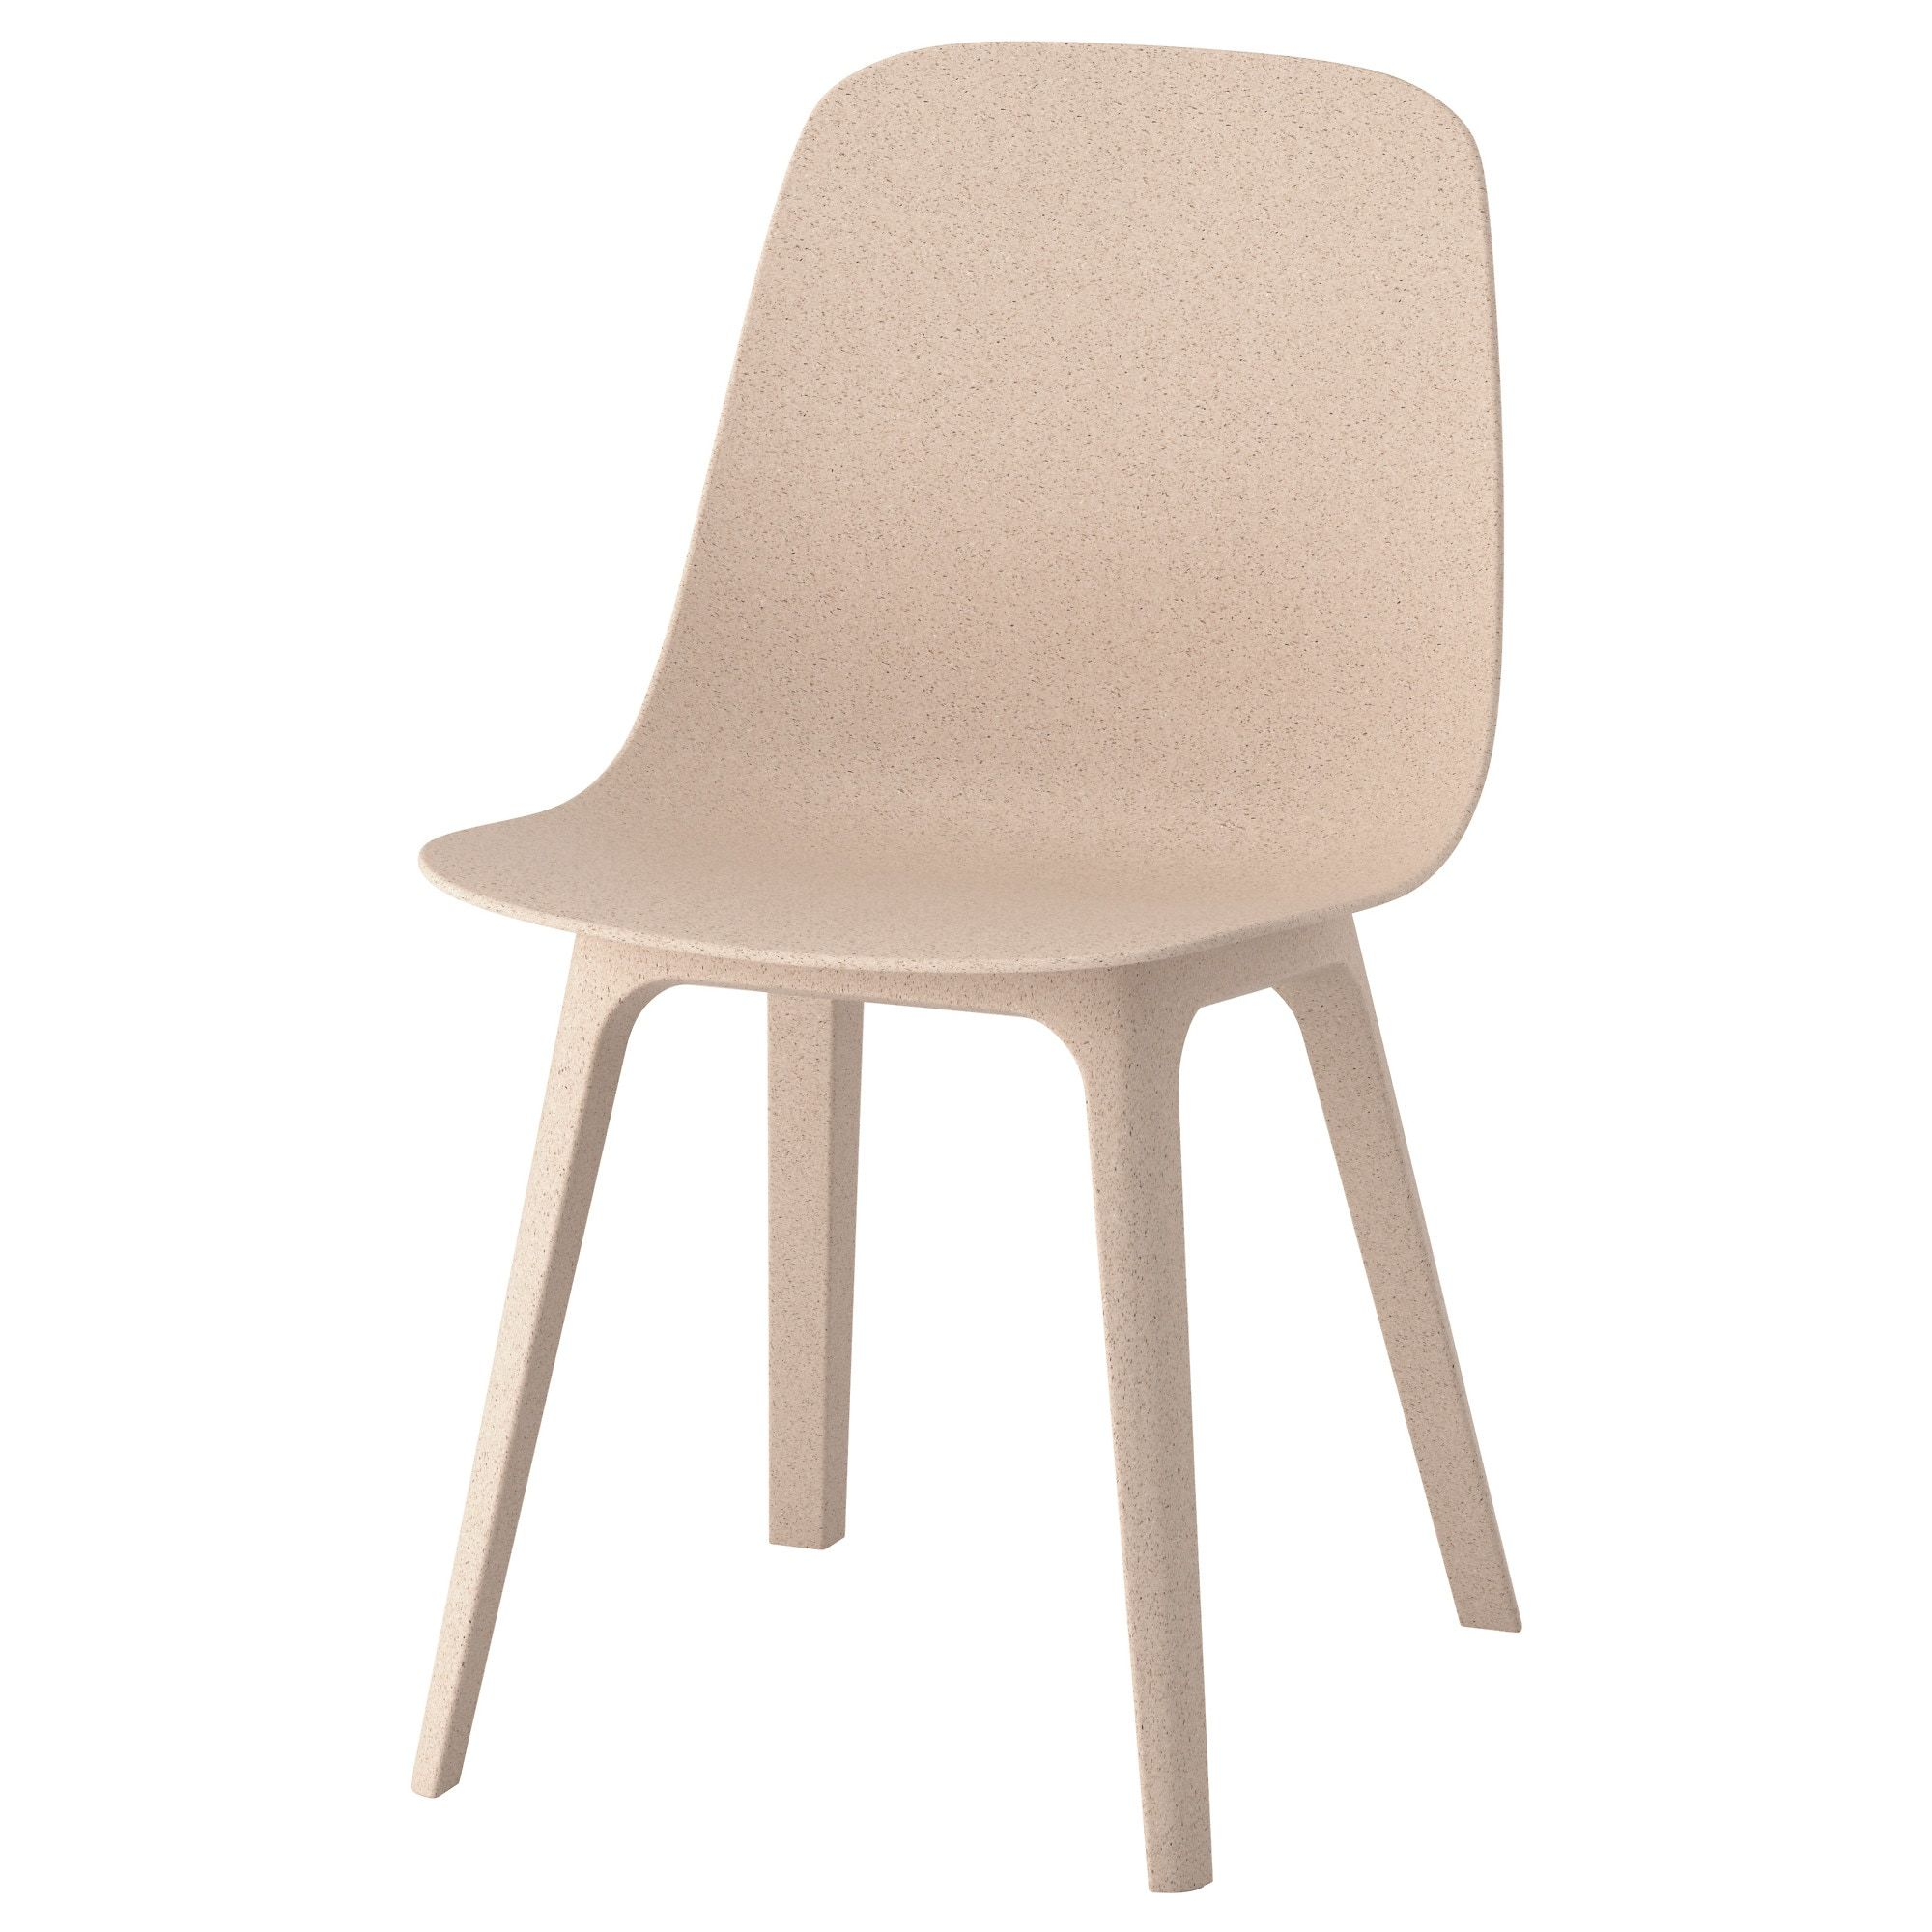 IKEA ODGER White, Beige Chair Ikea dining chair, Dining